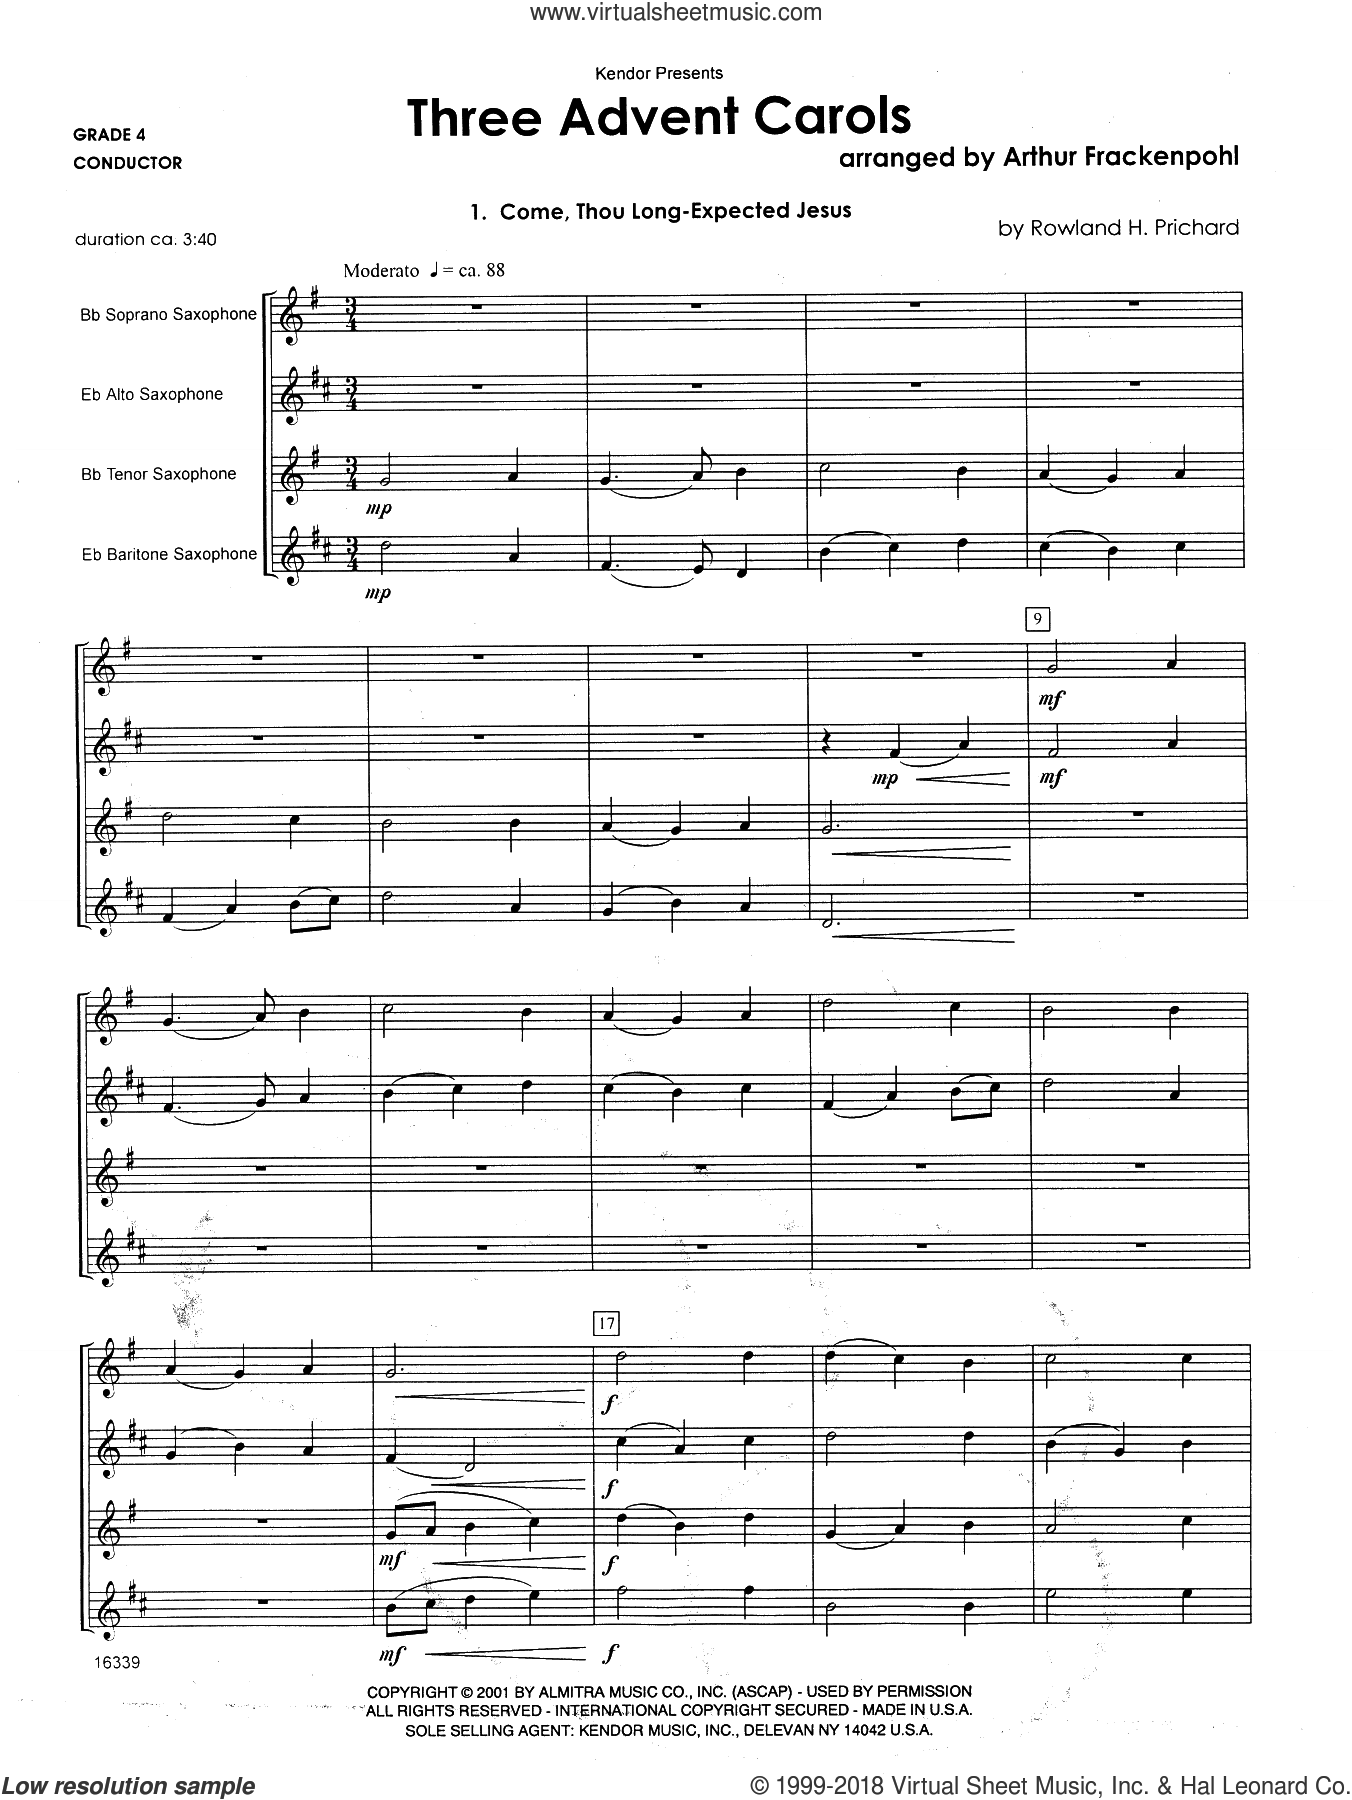 Three Advent Carols (COMPLETE) sheet music for saxophone quartet by Arthur Frackenpohl, intermediate. Score Image Preview.